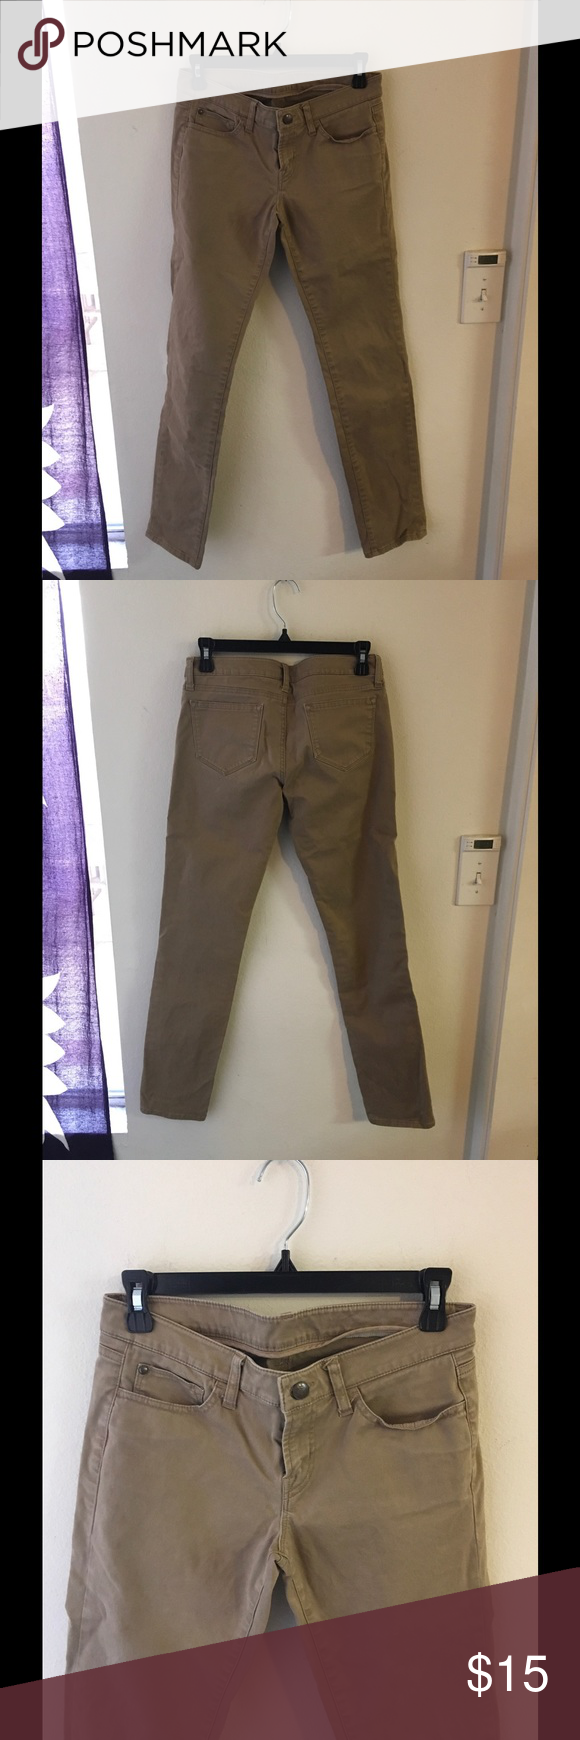 UNIQLO skinny pants size 2 In normal used condition, some fades, waist 64 cm is 25 inch Uniqlo Pants Skinny